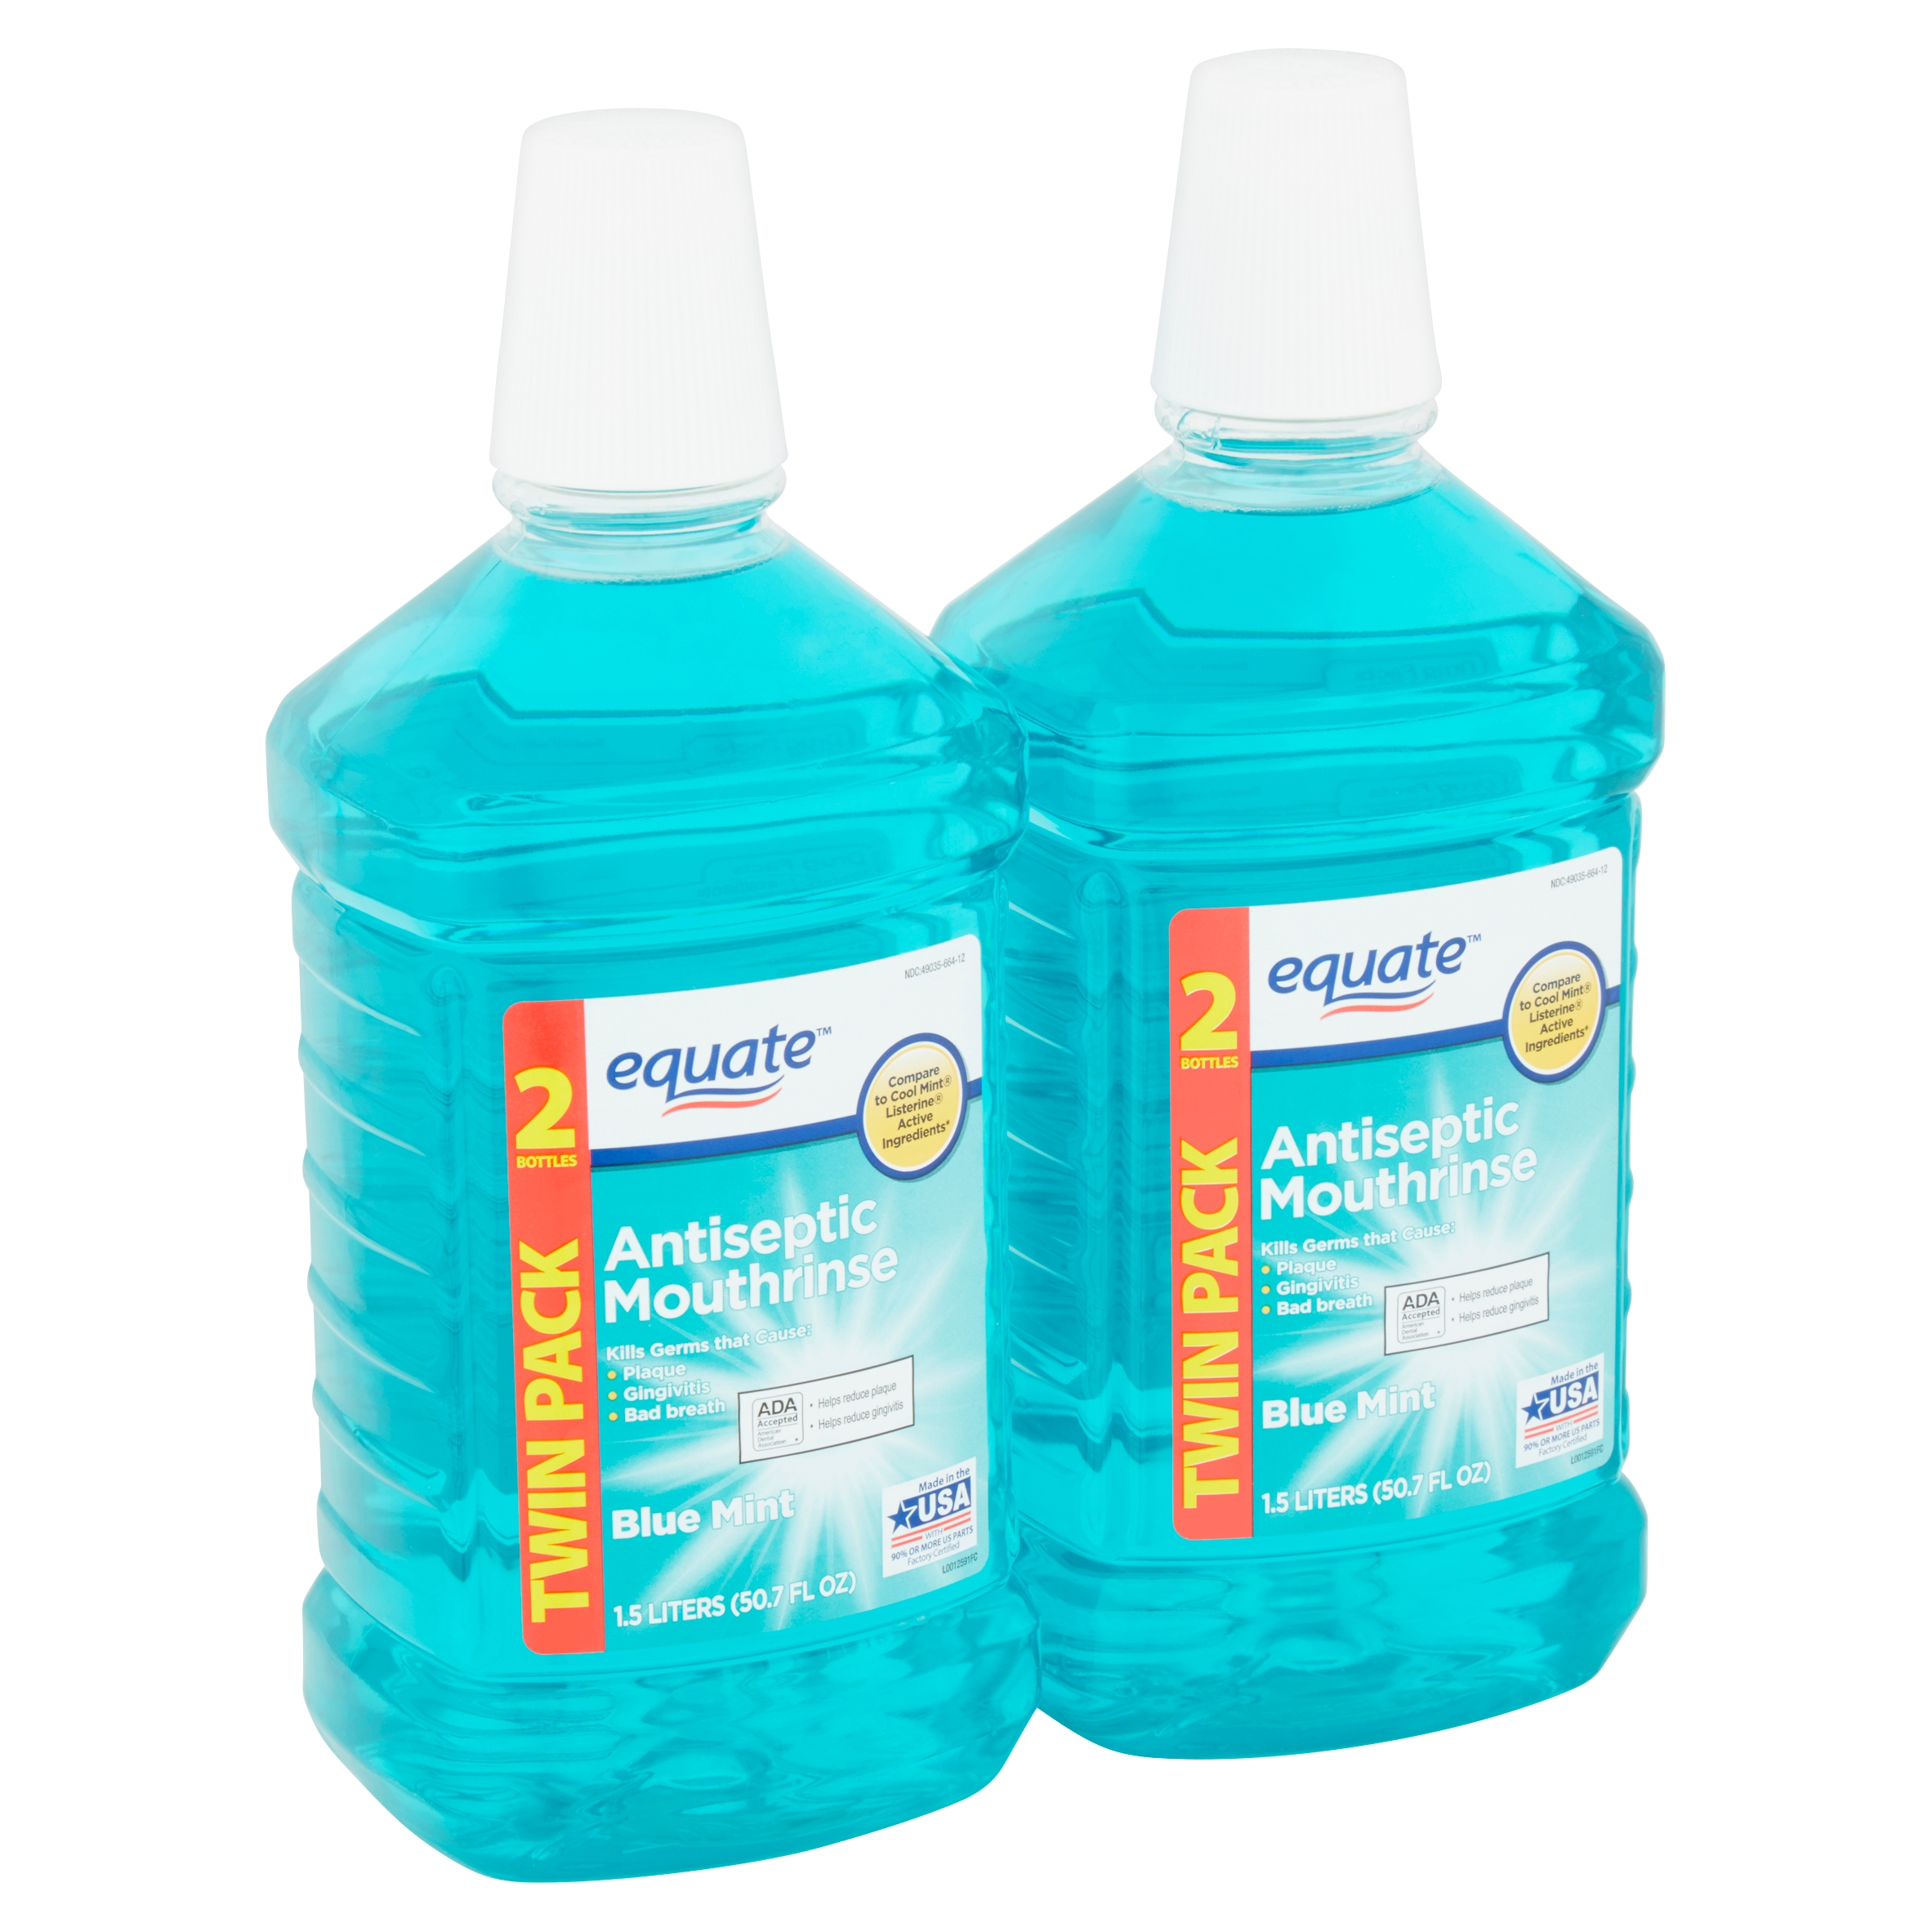 Equate Blue Mint Antiseptic Mouthrinse Twin Pack, 50.7 fl oz, 2 count